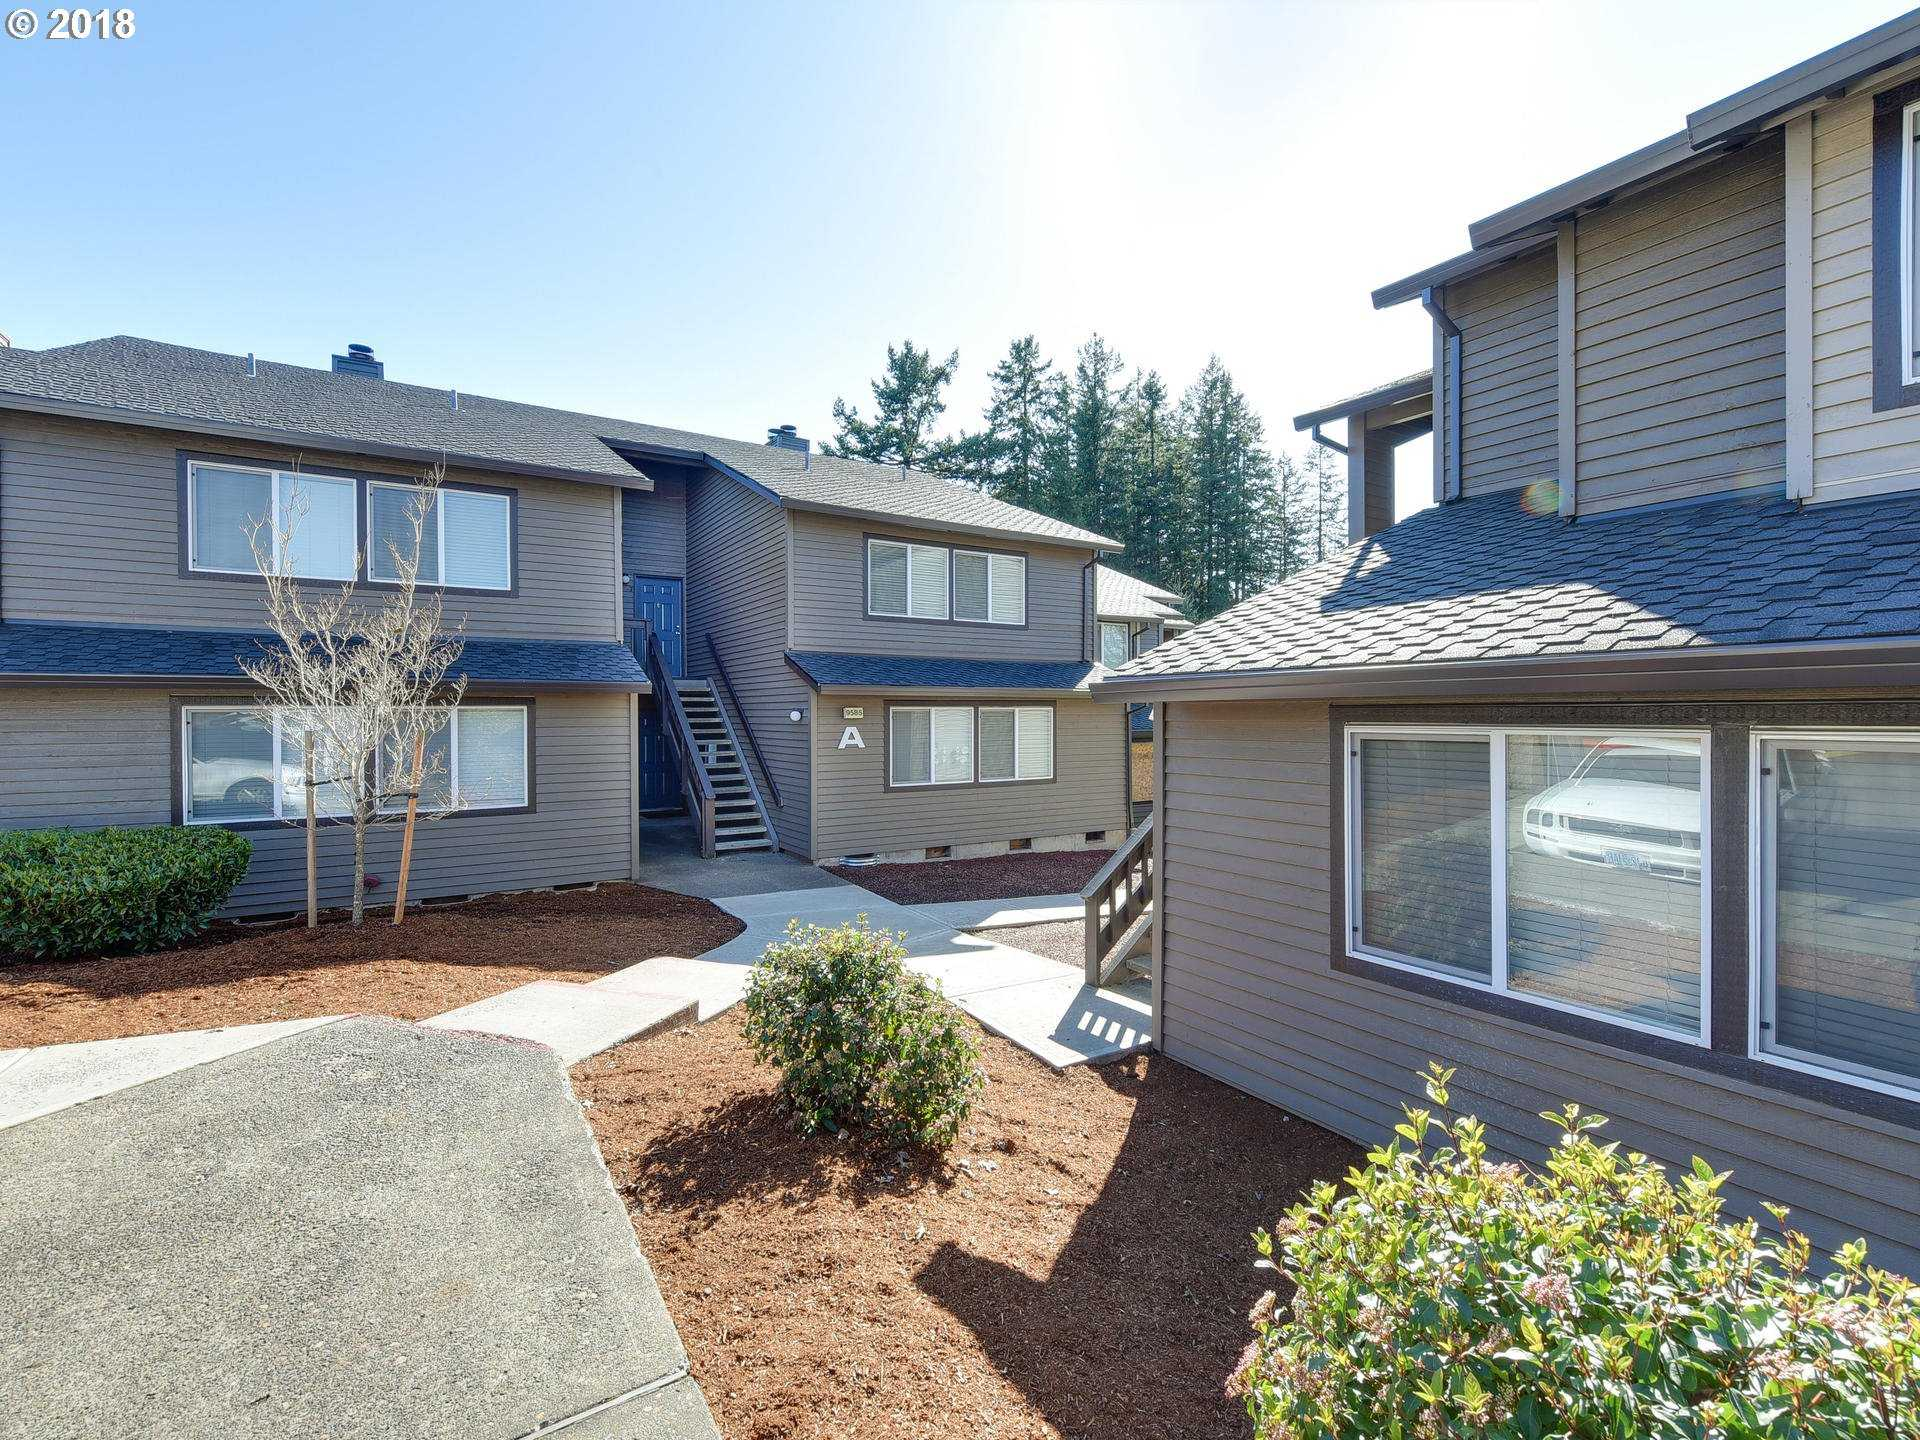 $199,900 - 2Br/2Ba -  for Sale in Murrayhill Woods, Beaverton